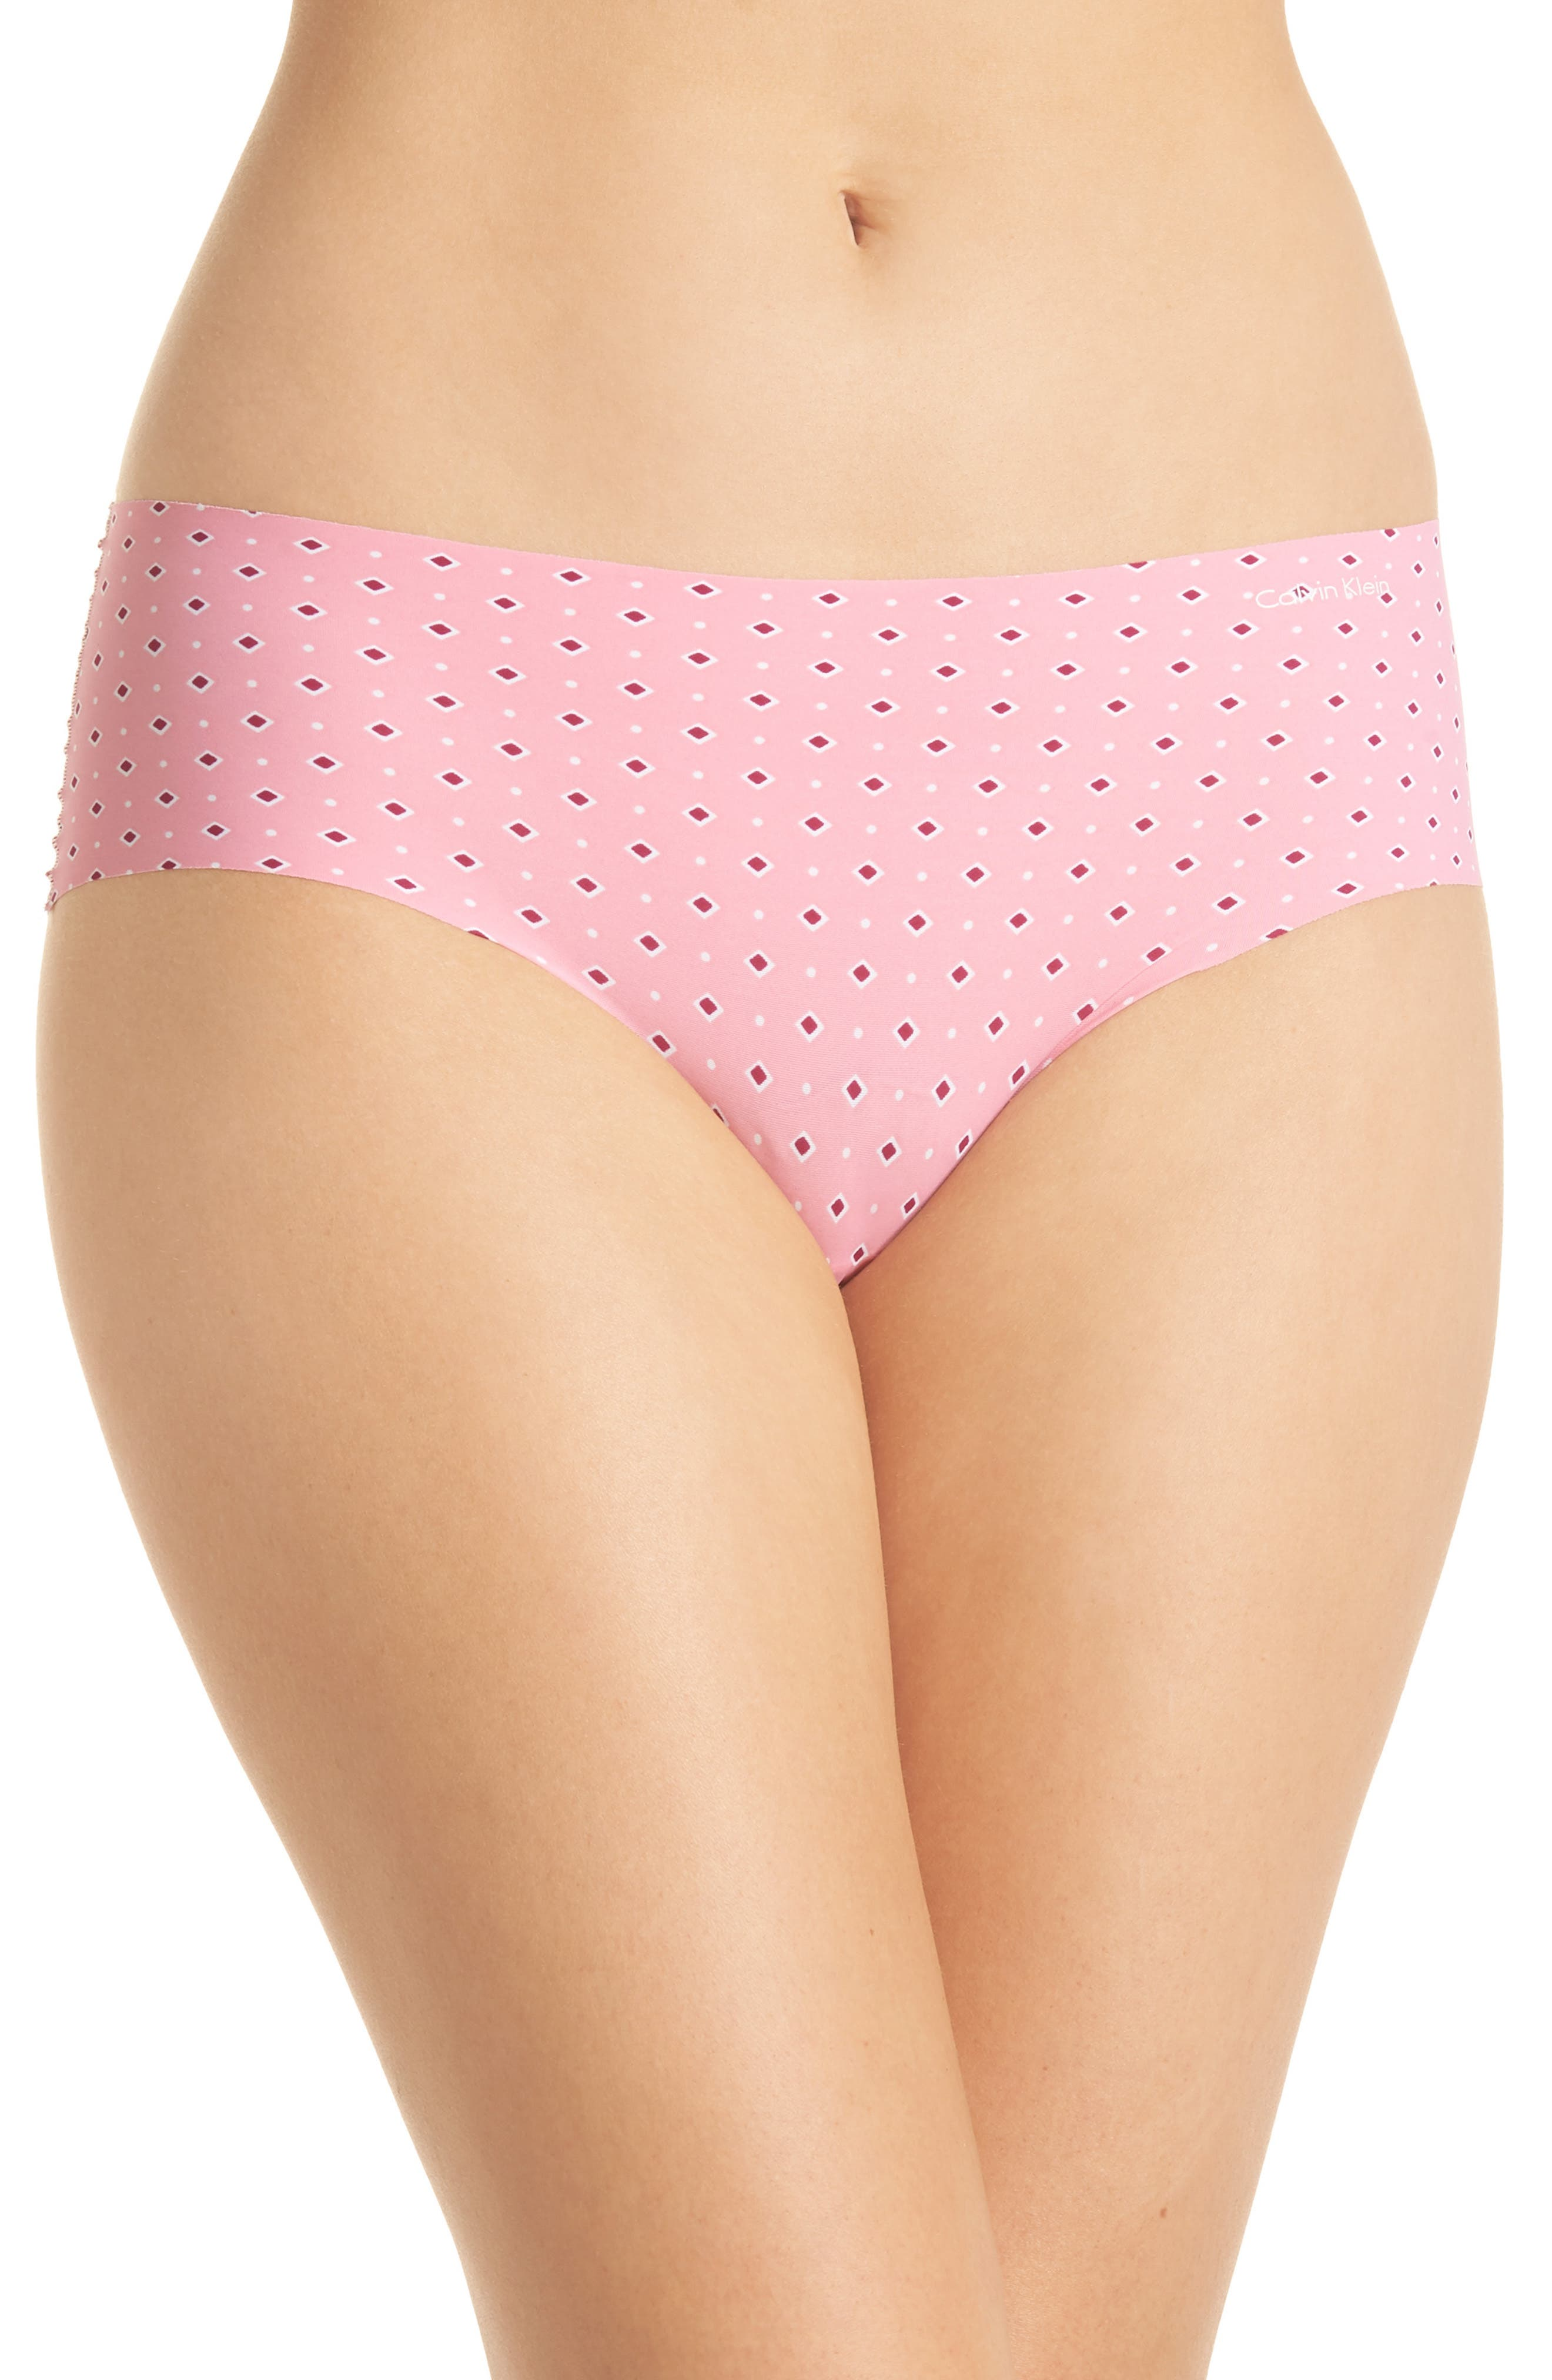 Invisibles Hipster Briefs,                         Main,                         color, SHADOW DIAMOND